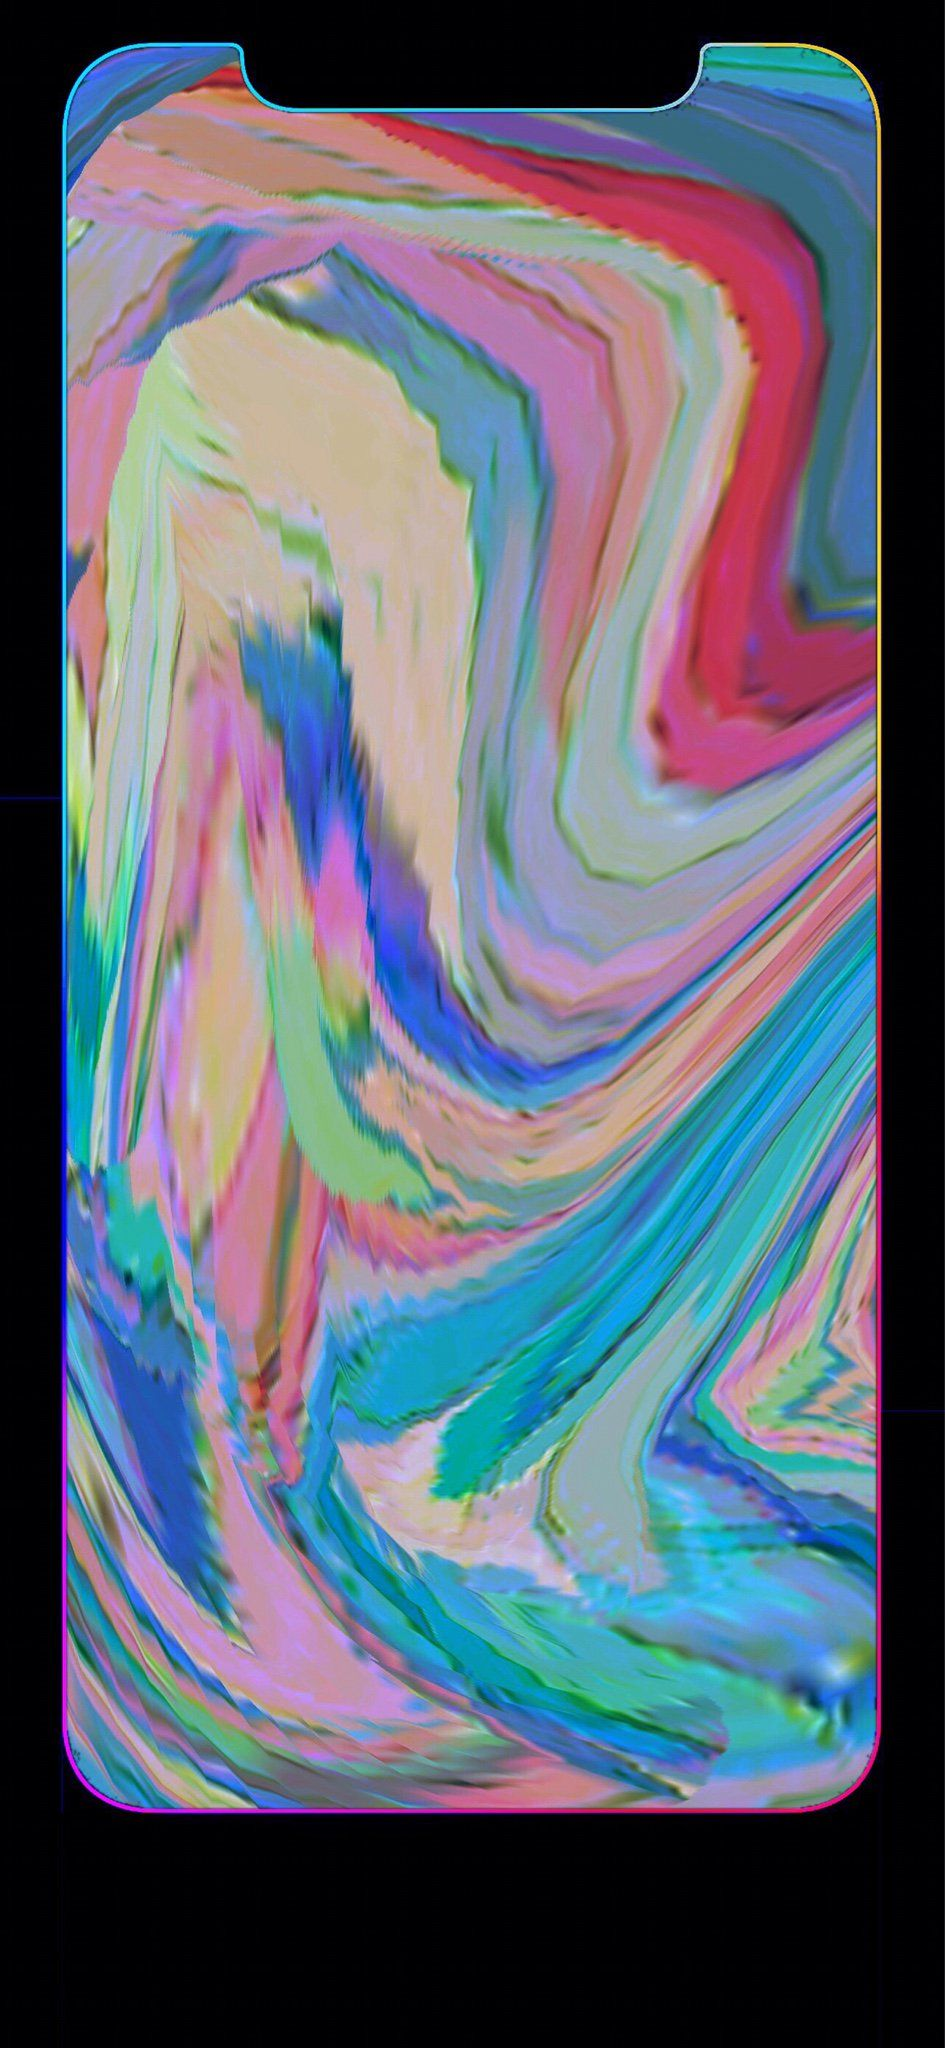 The iPhone X/Xs Wallpaper Thread Page 53 iPhone, iPad